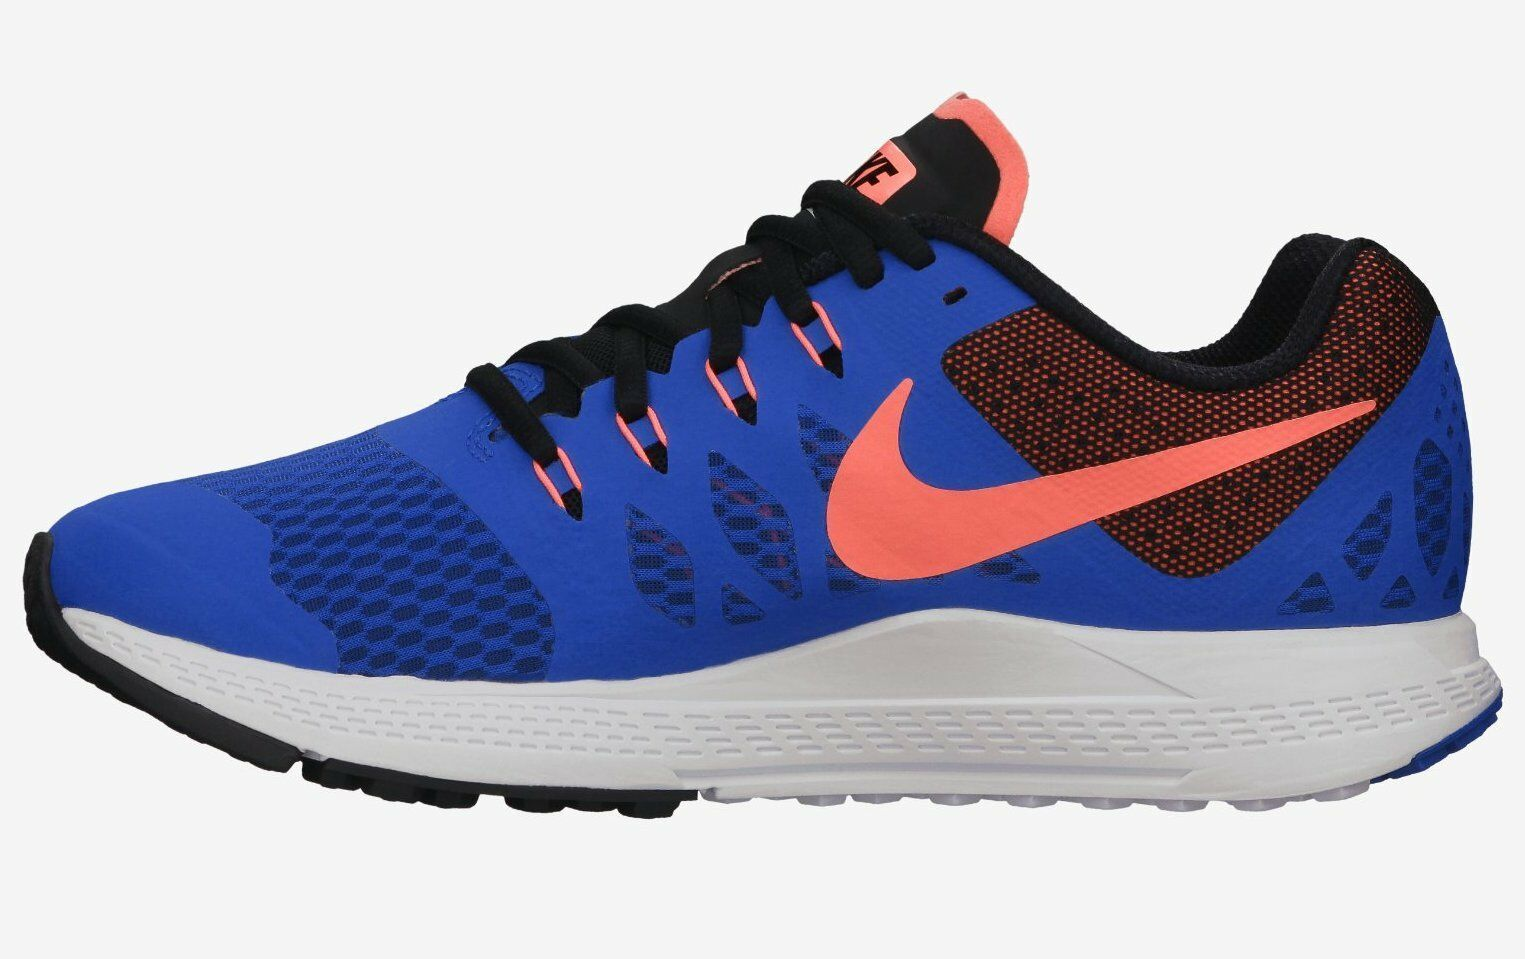 NIKE WOMEN'S AIR ZOOM ELITE 7 SHOES SIZE 6 hyper cobalt mango black 654444 400 image 2